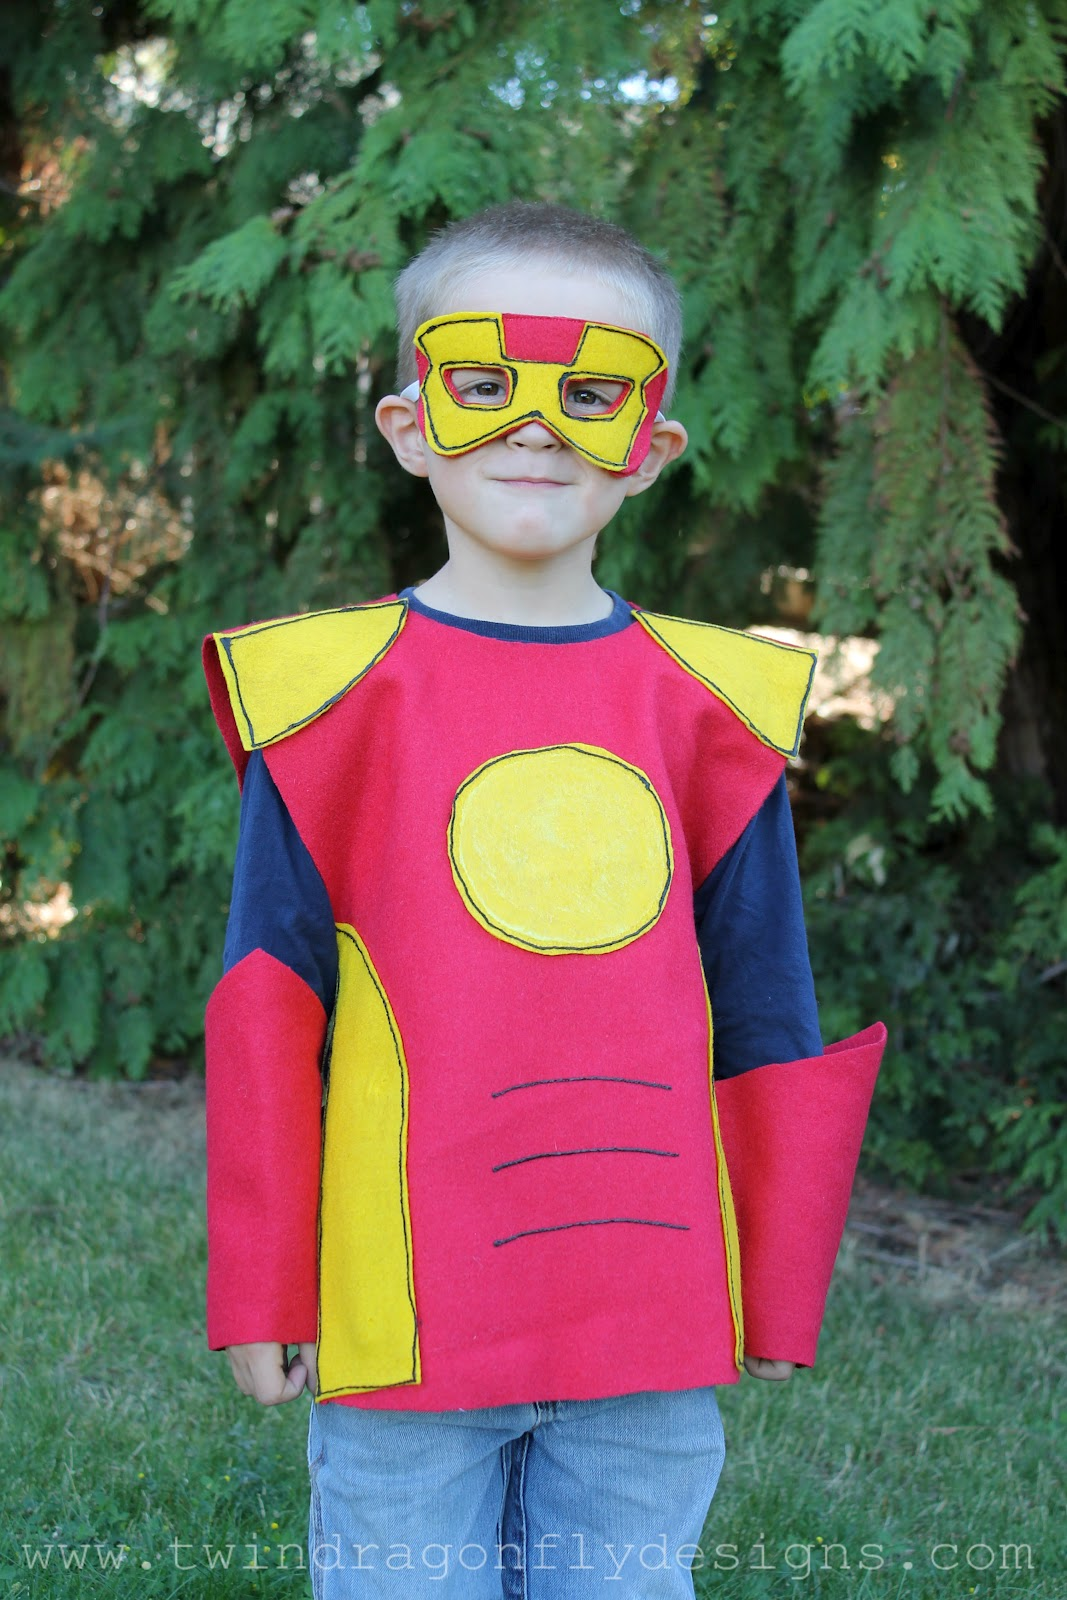 sc 1 st  Twin Dragonfly Designs & No Sew SUPER HERO COSTUMES Tutorial » Dragonfly Designs